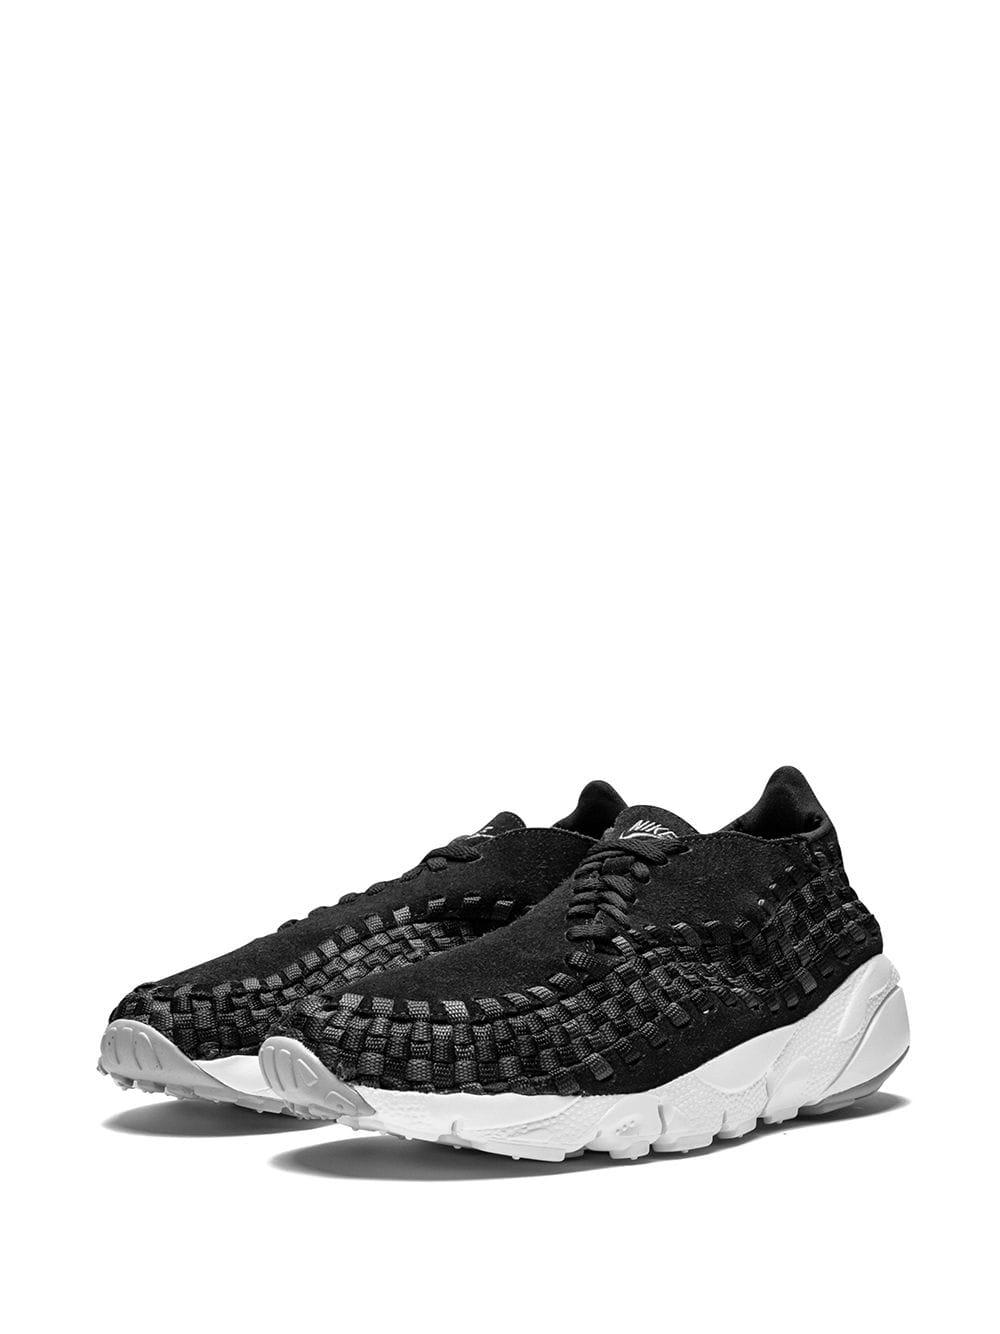 136f6d96961b Lyst - Nike Air Footscape Woven Nm Sneakers in Black for Men